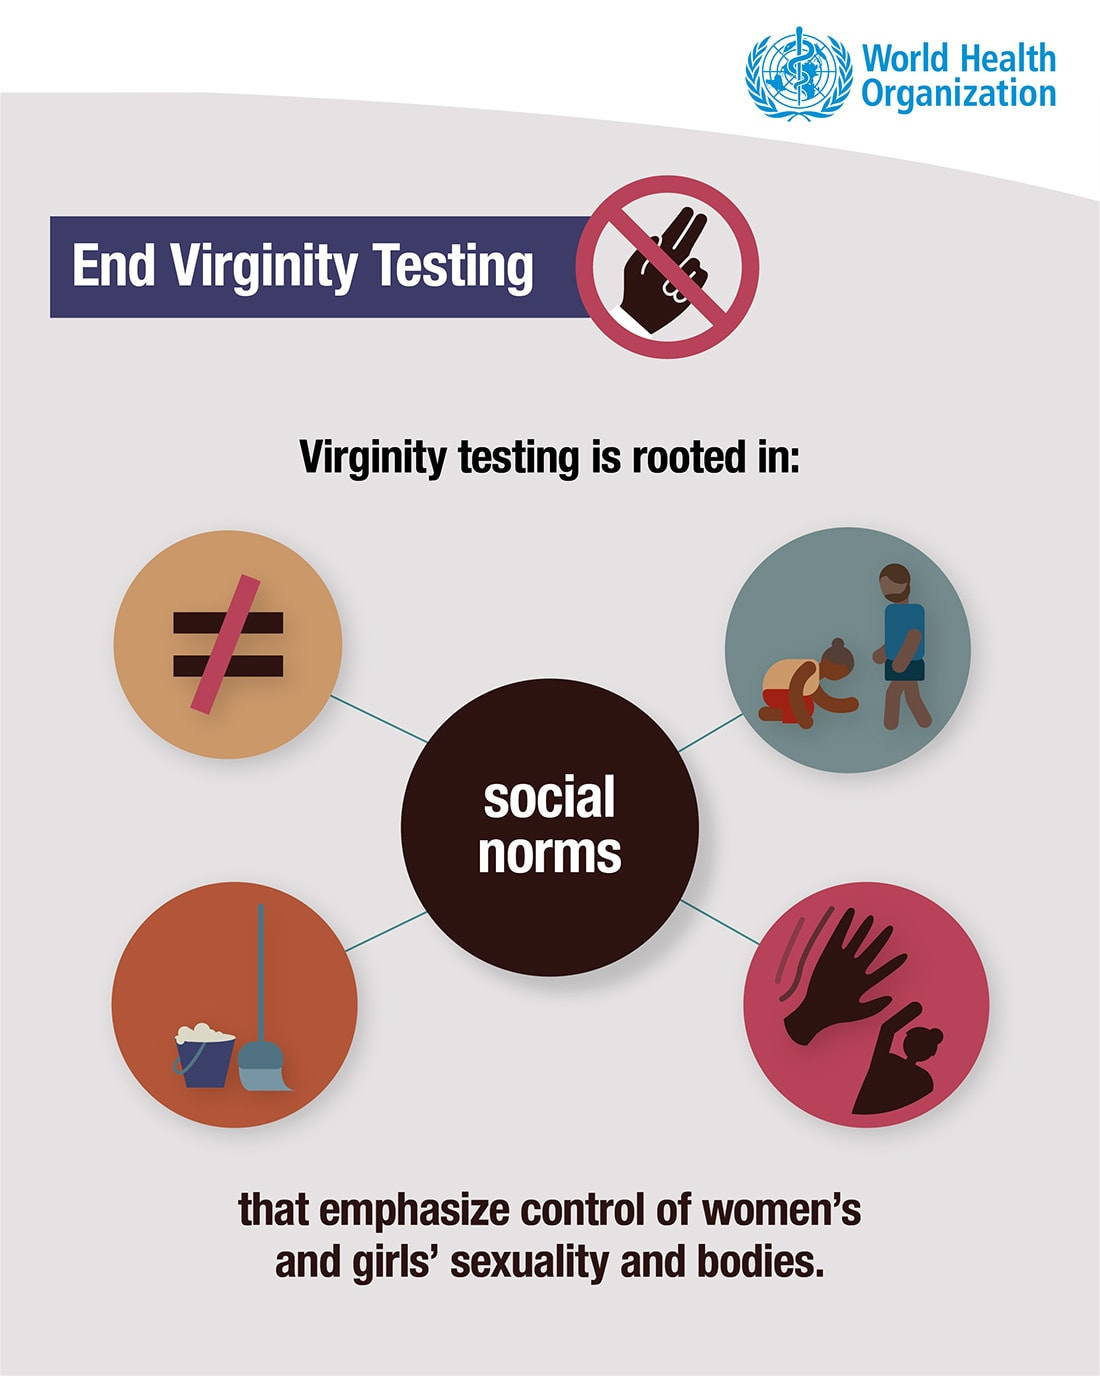 Virginity testing is rooted in social norms that emphasize control of women's and girls' sexuality and bodies—WHO